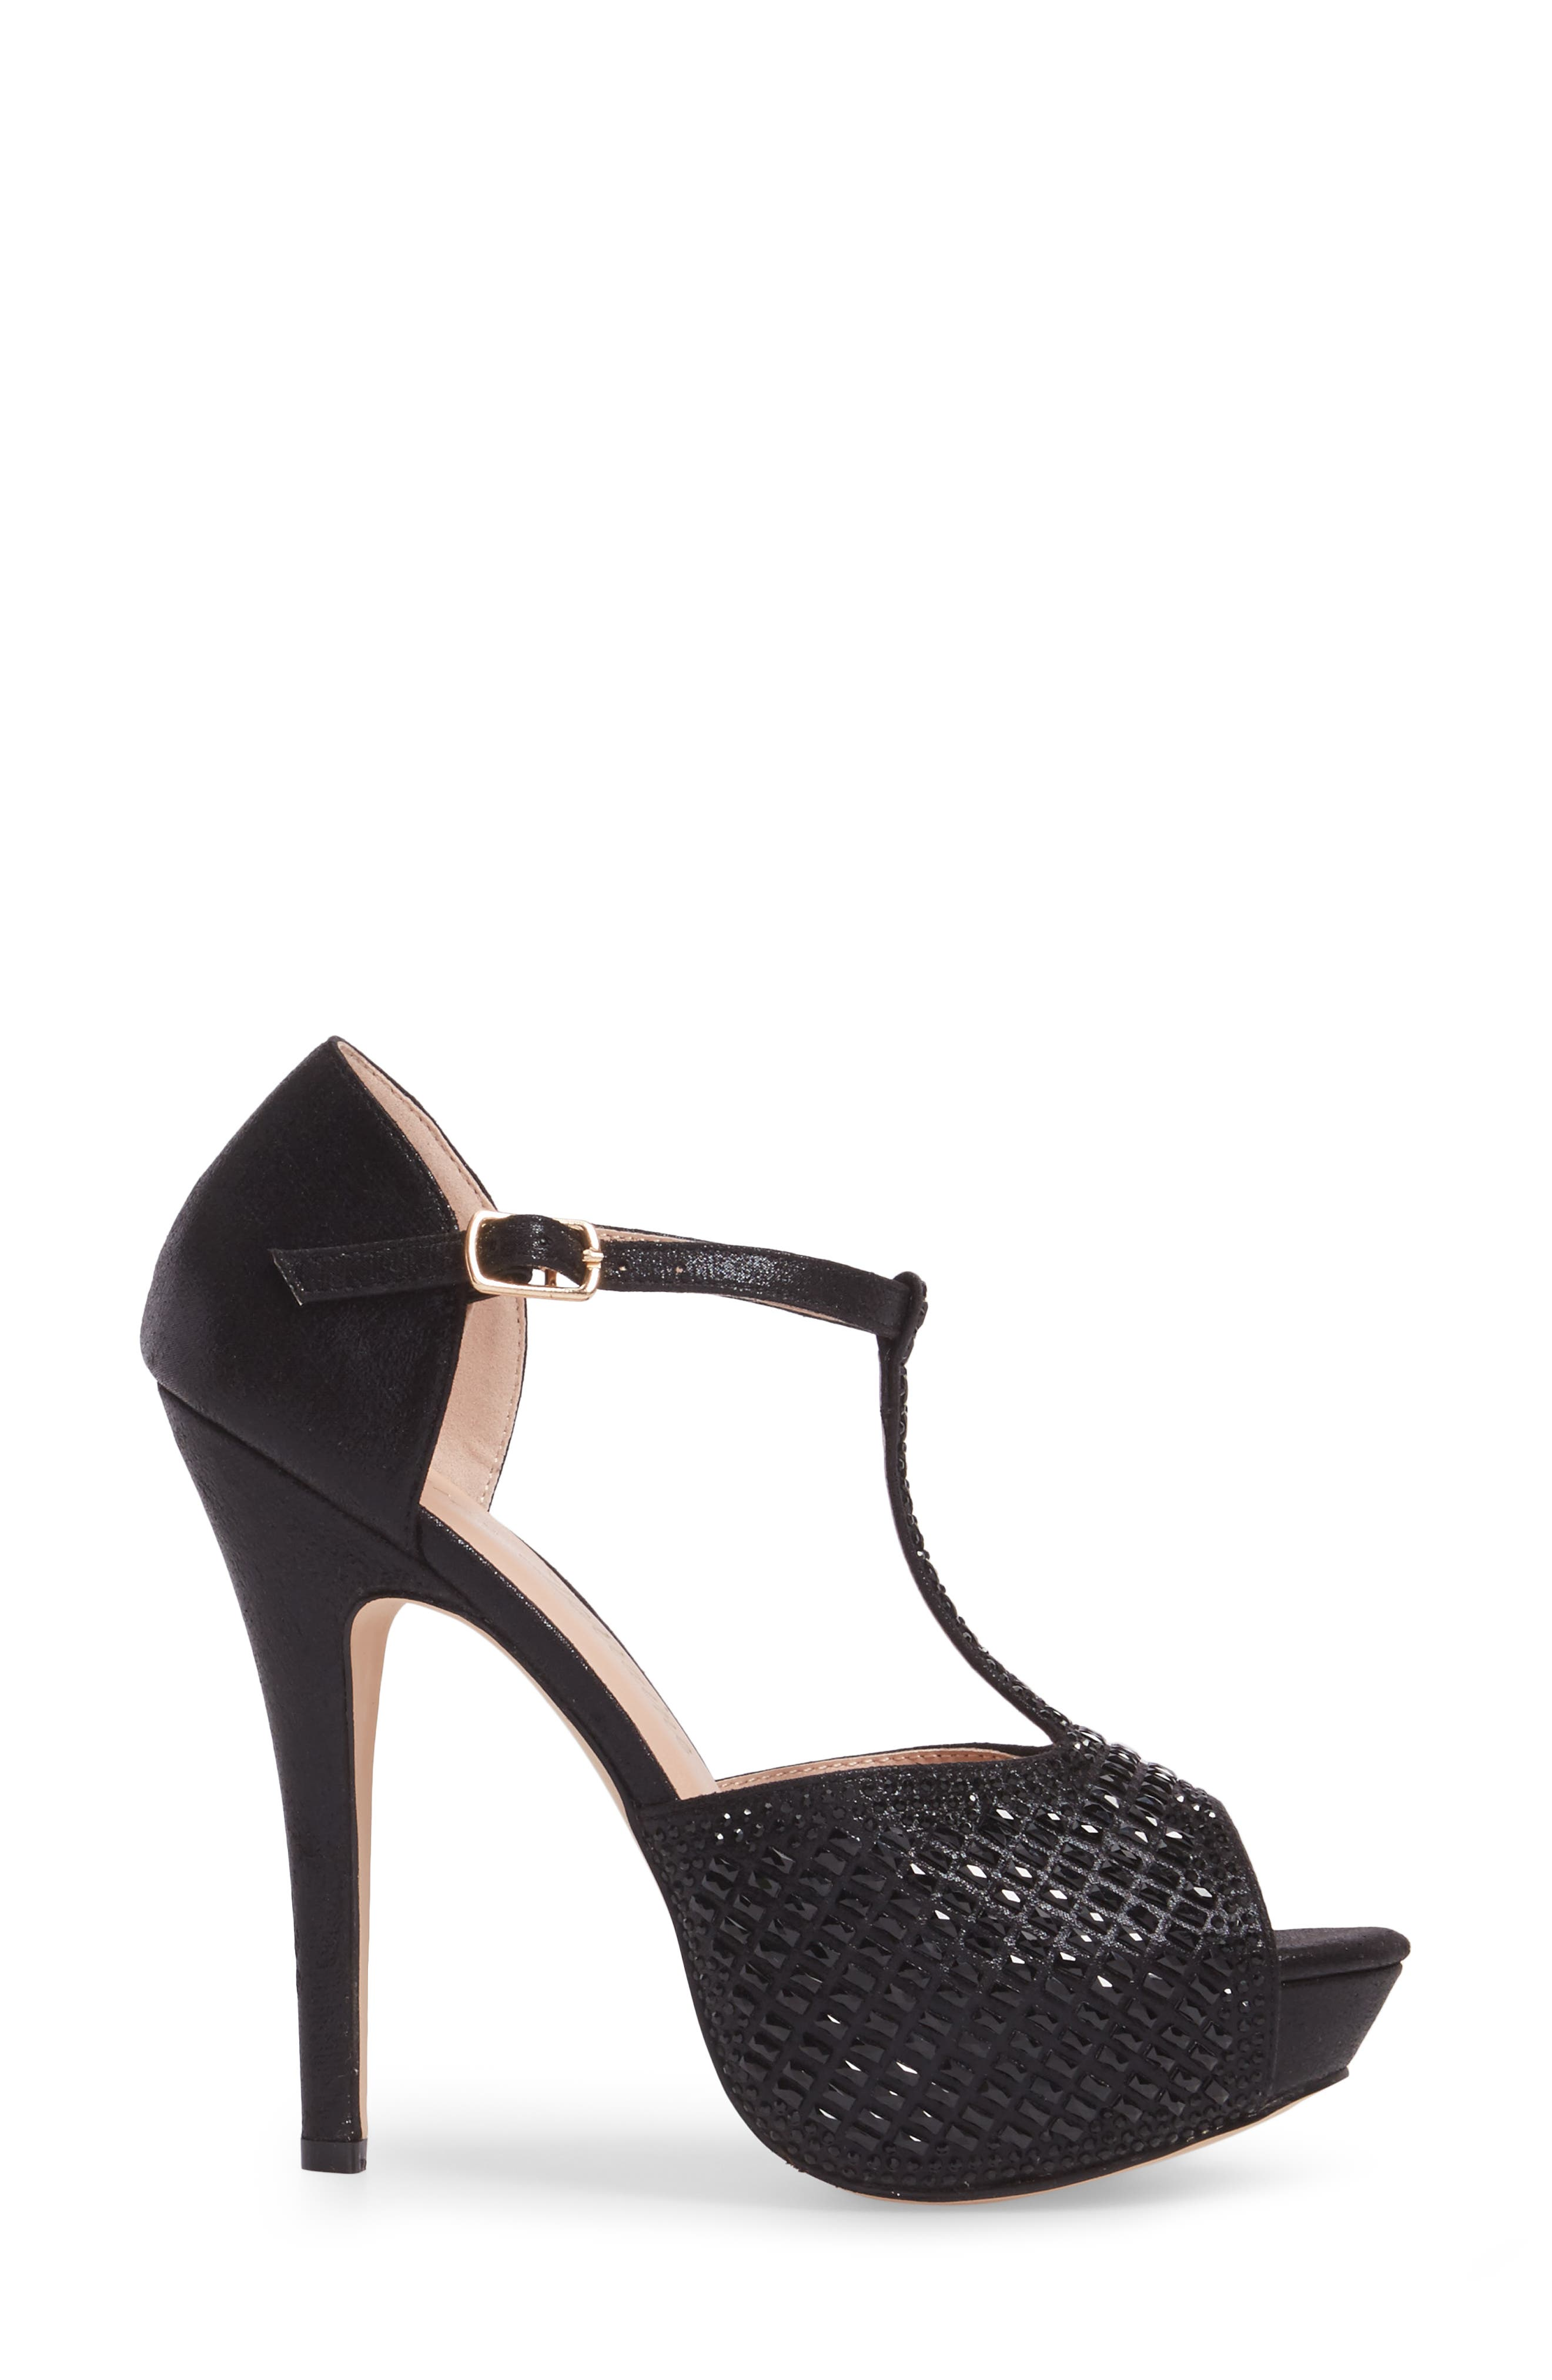 Vivian 4 Crystal Embellished Sandal,                             Alternate thumbnail 3, color,                             Black Shimmer